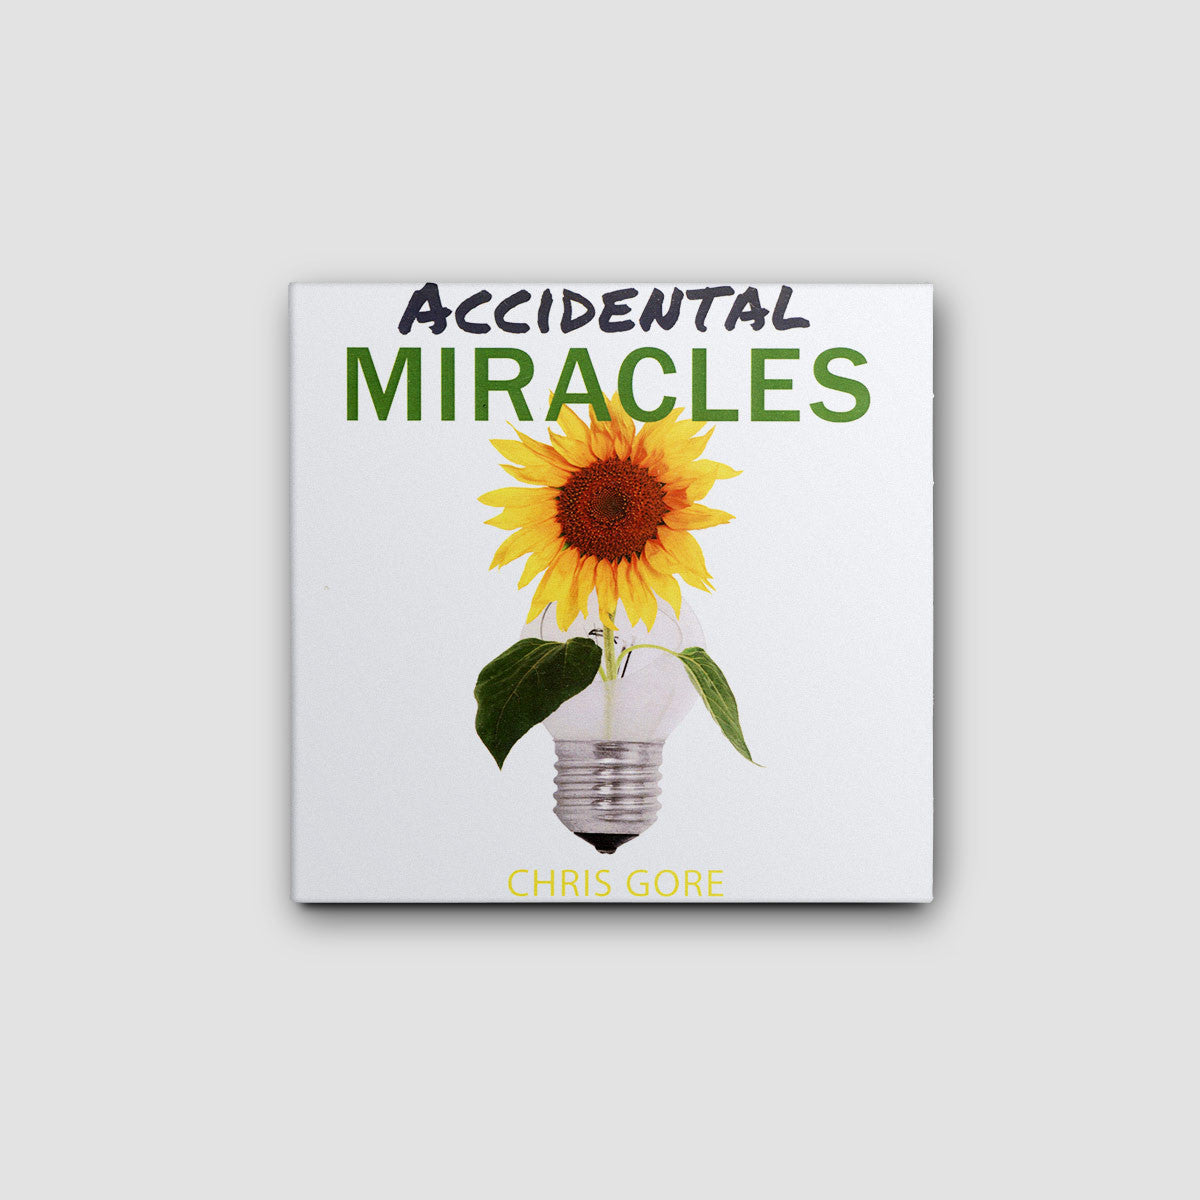 Accidental Miracles